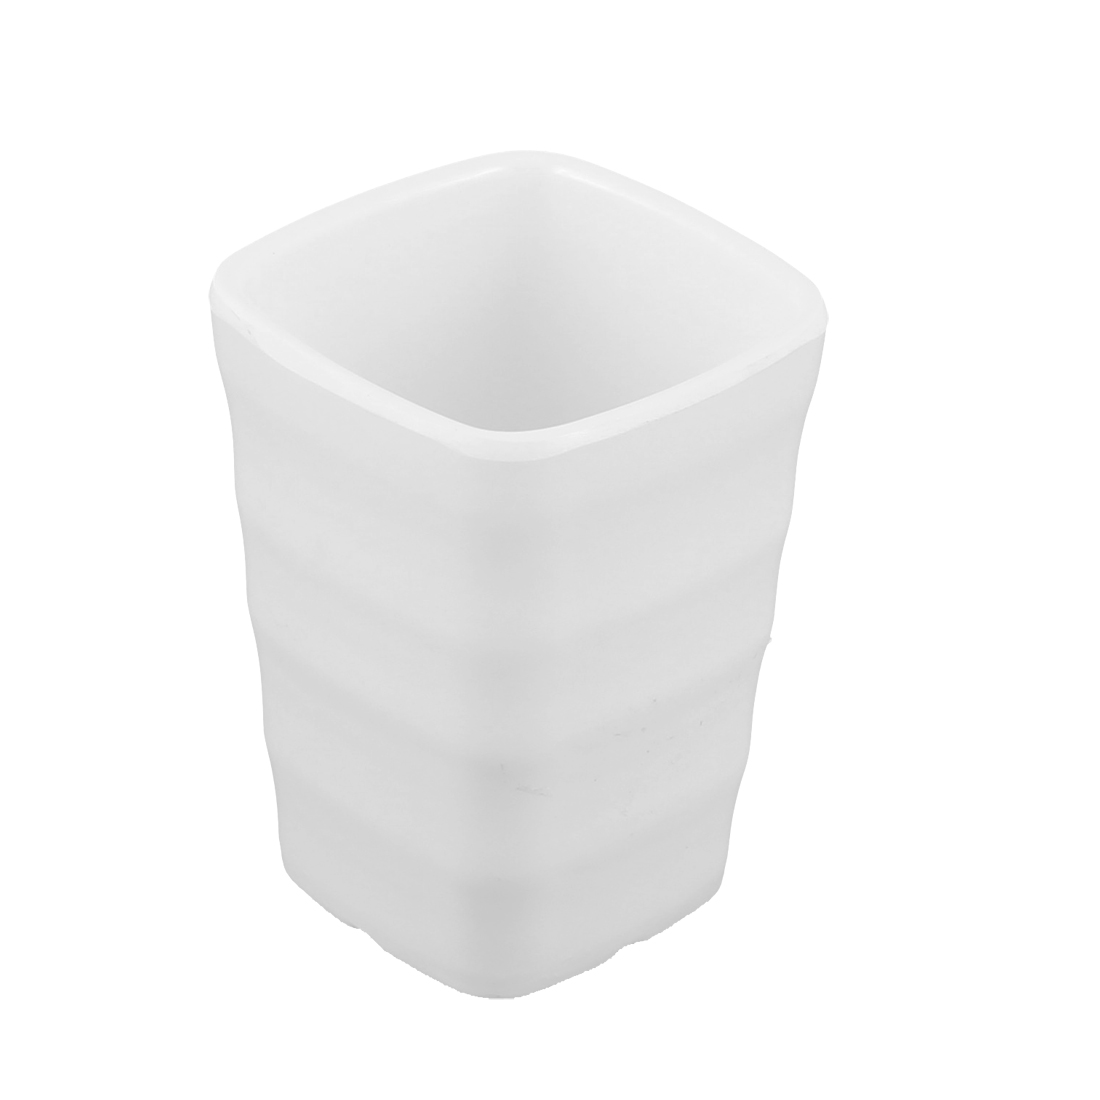 Home Restaurant Plastic Square Water Tea Drinking Cup White